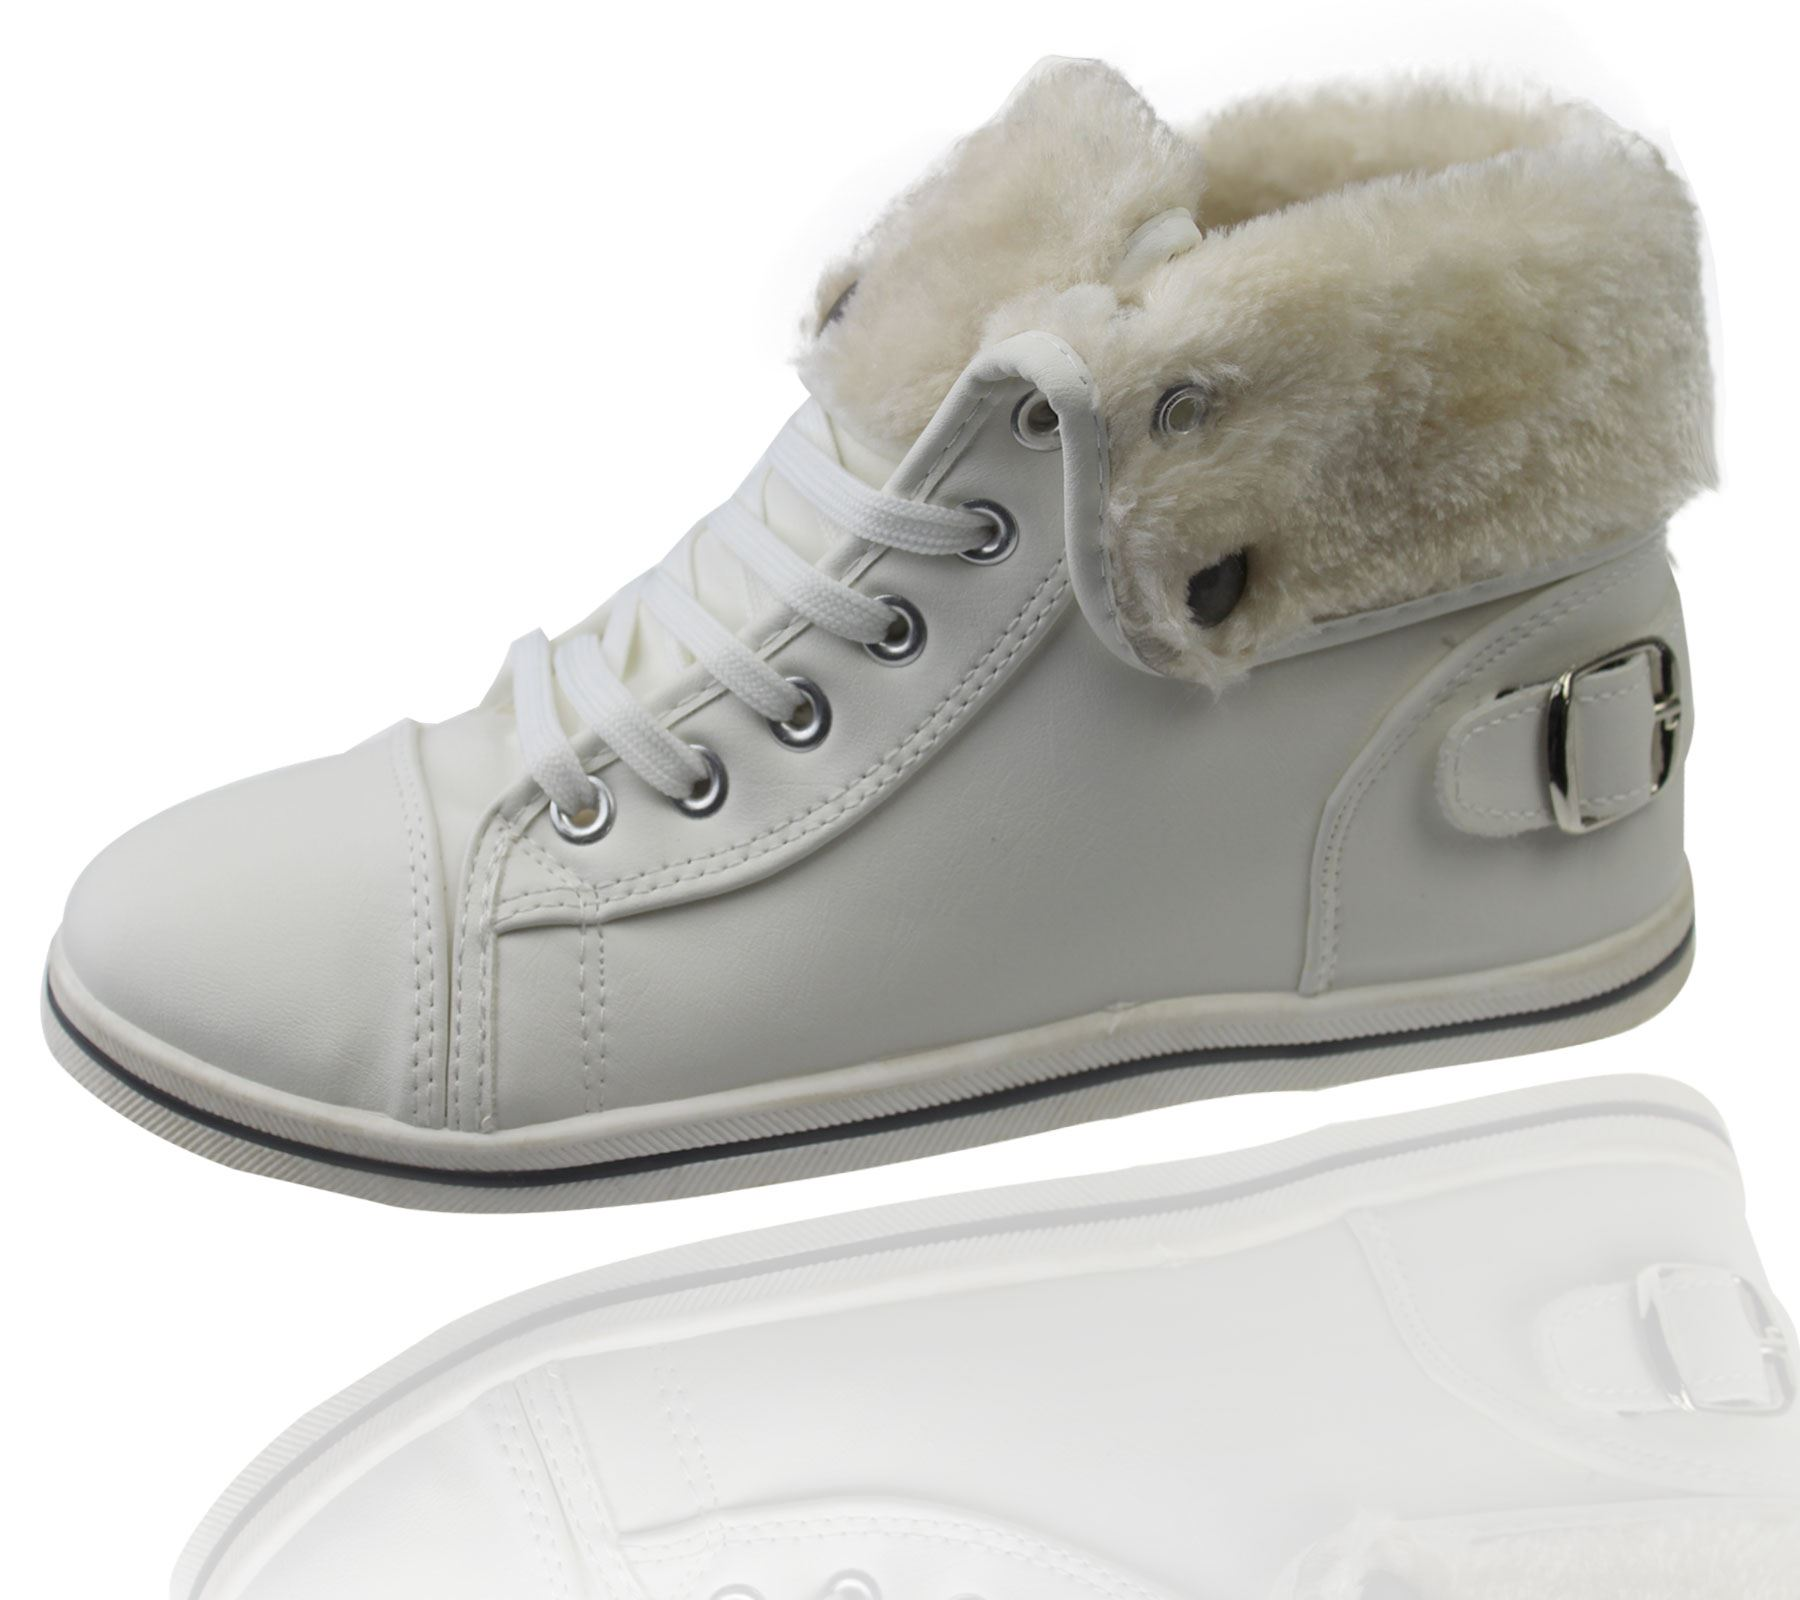 Girls-Boots-Womens-Warm-Lined-High-Top-Ankle-Trainer-Ladies-Winter-Shoes-Size miniatura 71